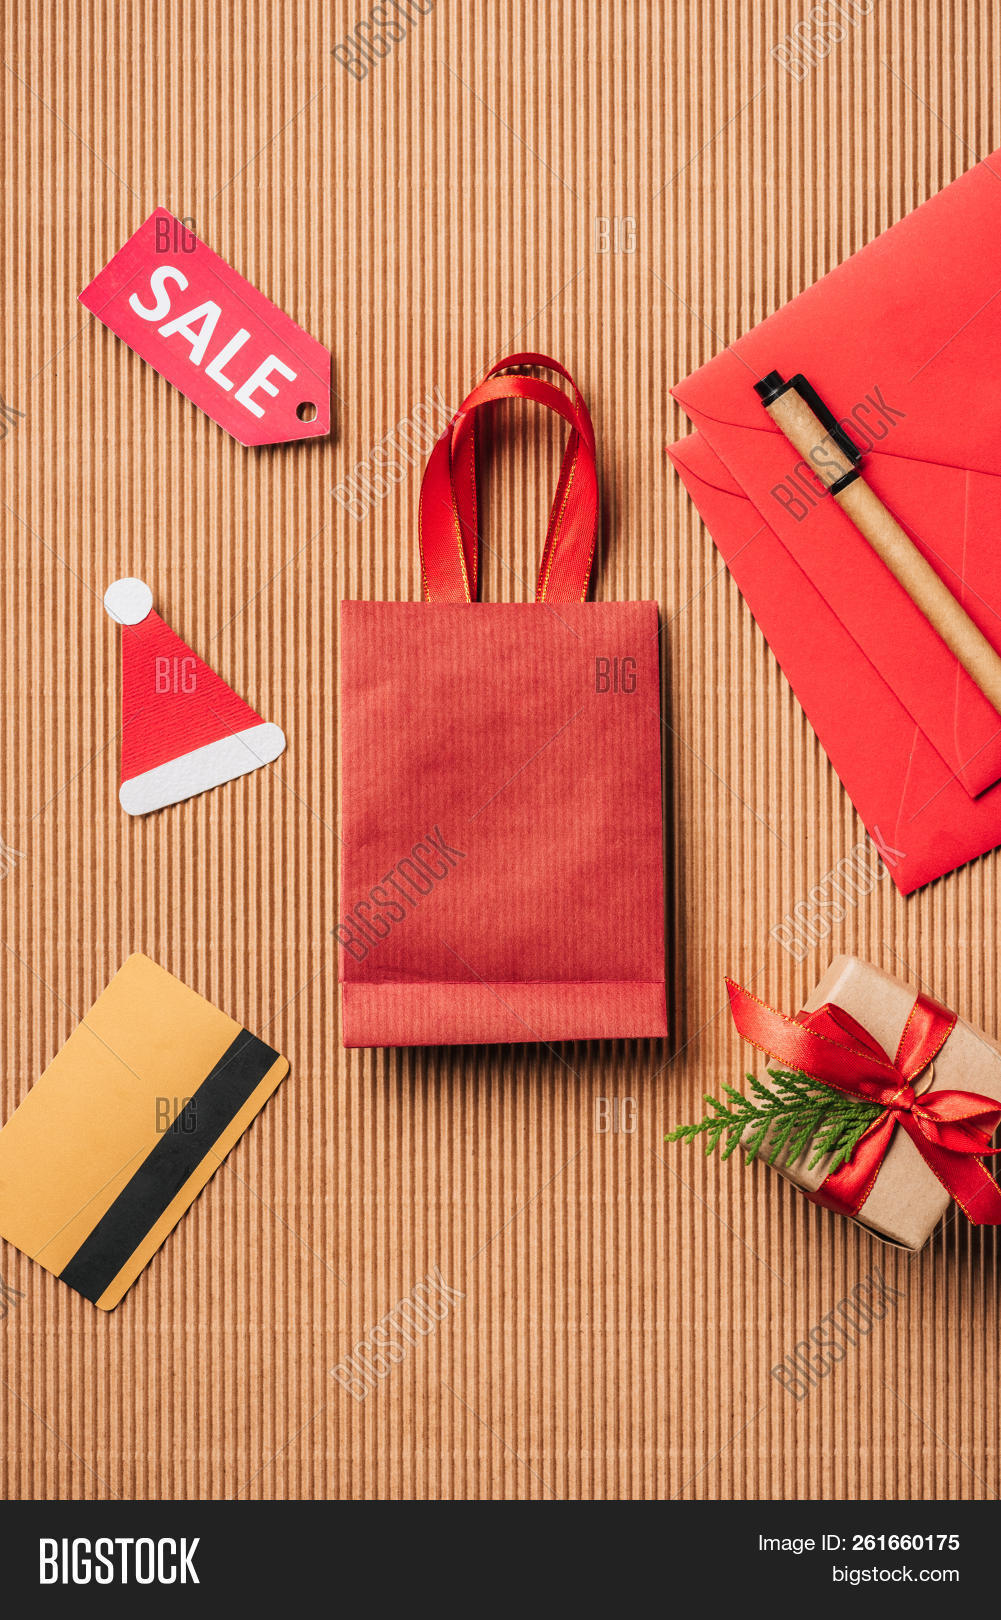 1ef4d241139b Top View Of Red Shopping Bag, Decorated Gift Box, Credit Card And Sale Sign